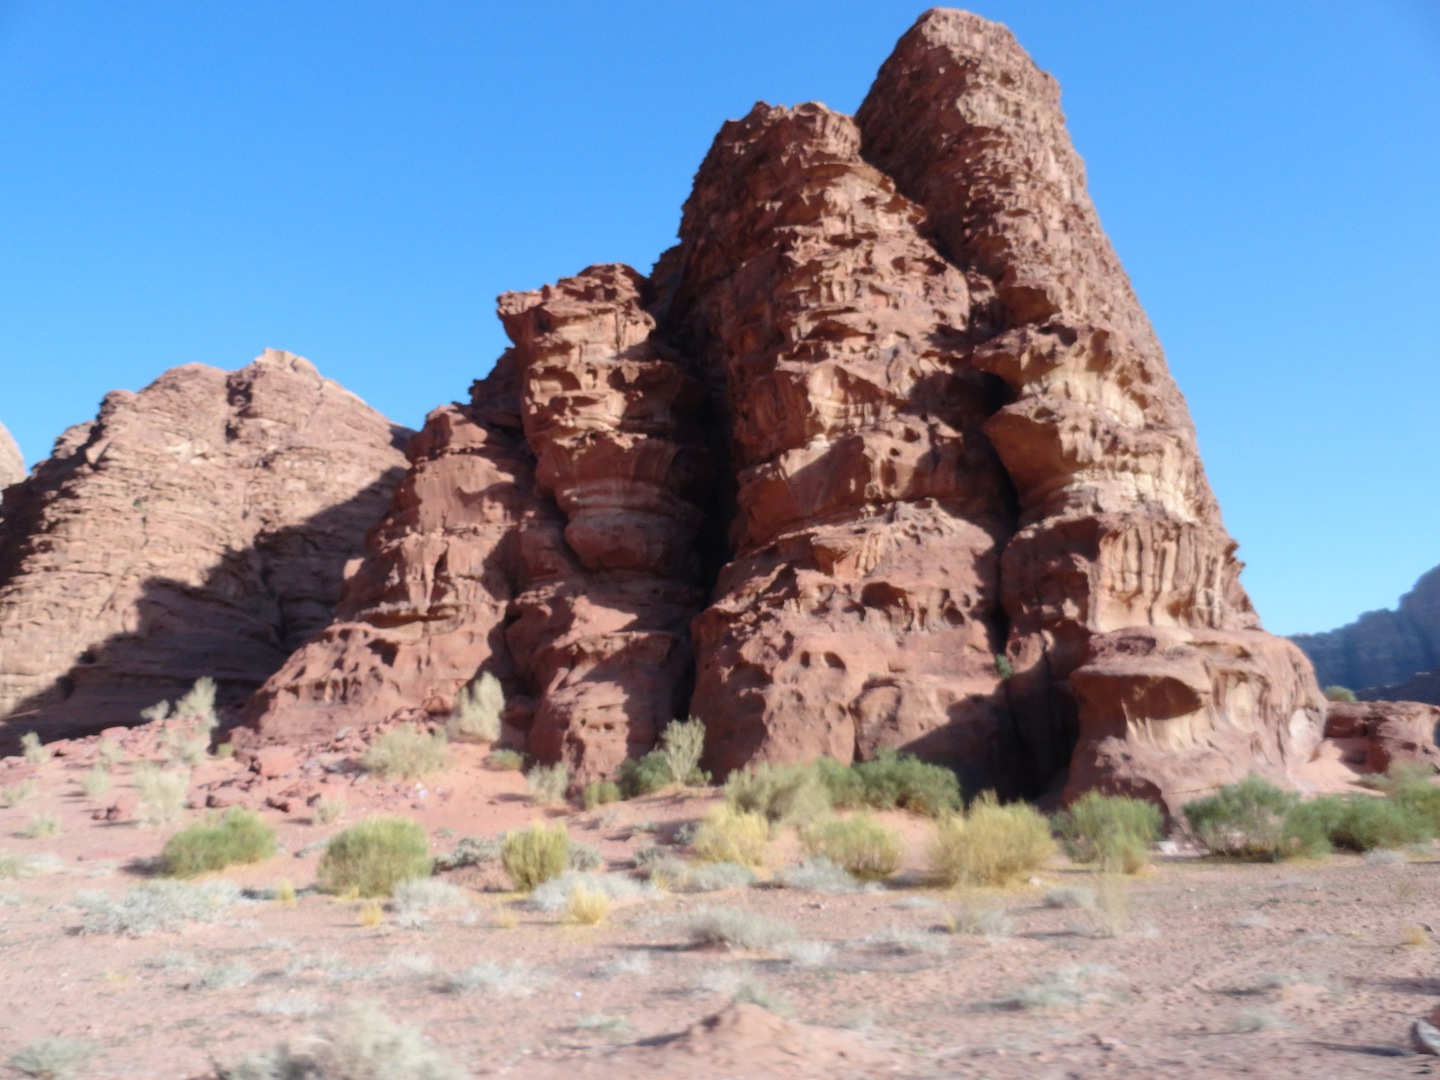 The rock formations at Wadi Rum.  All of this was under water years ago.